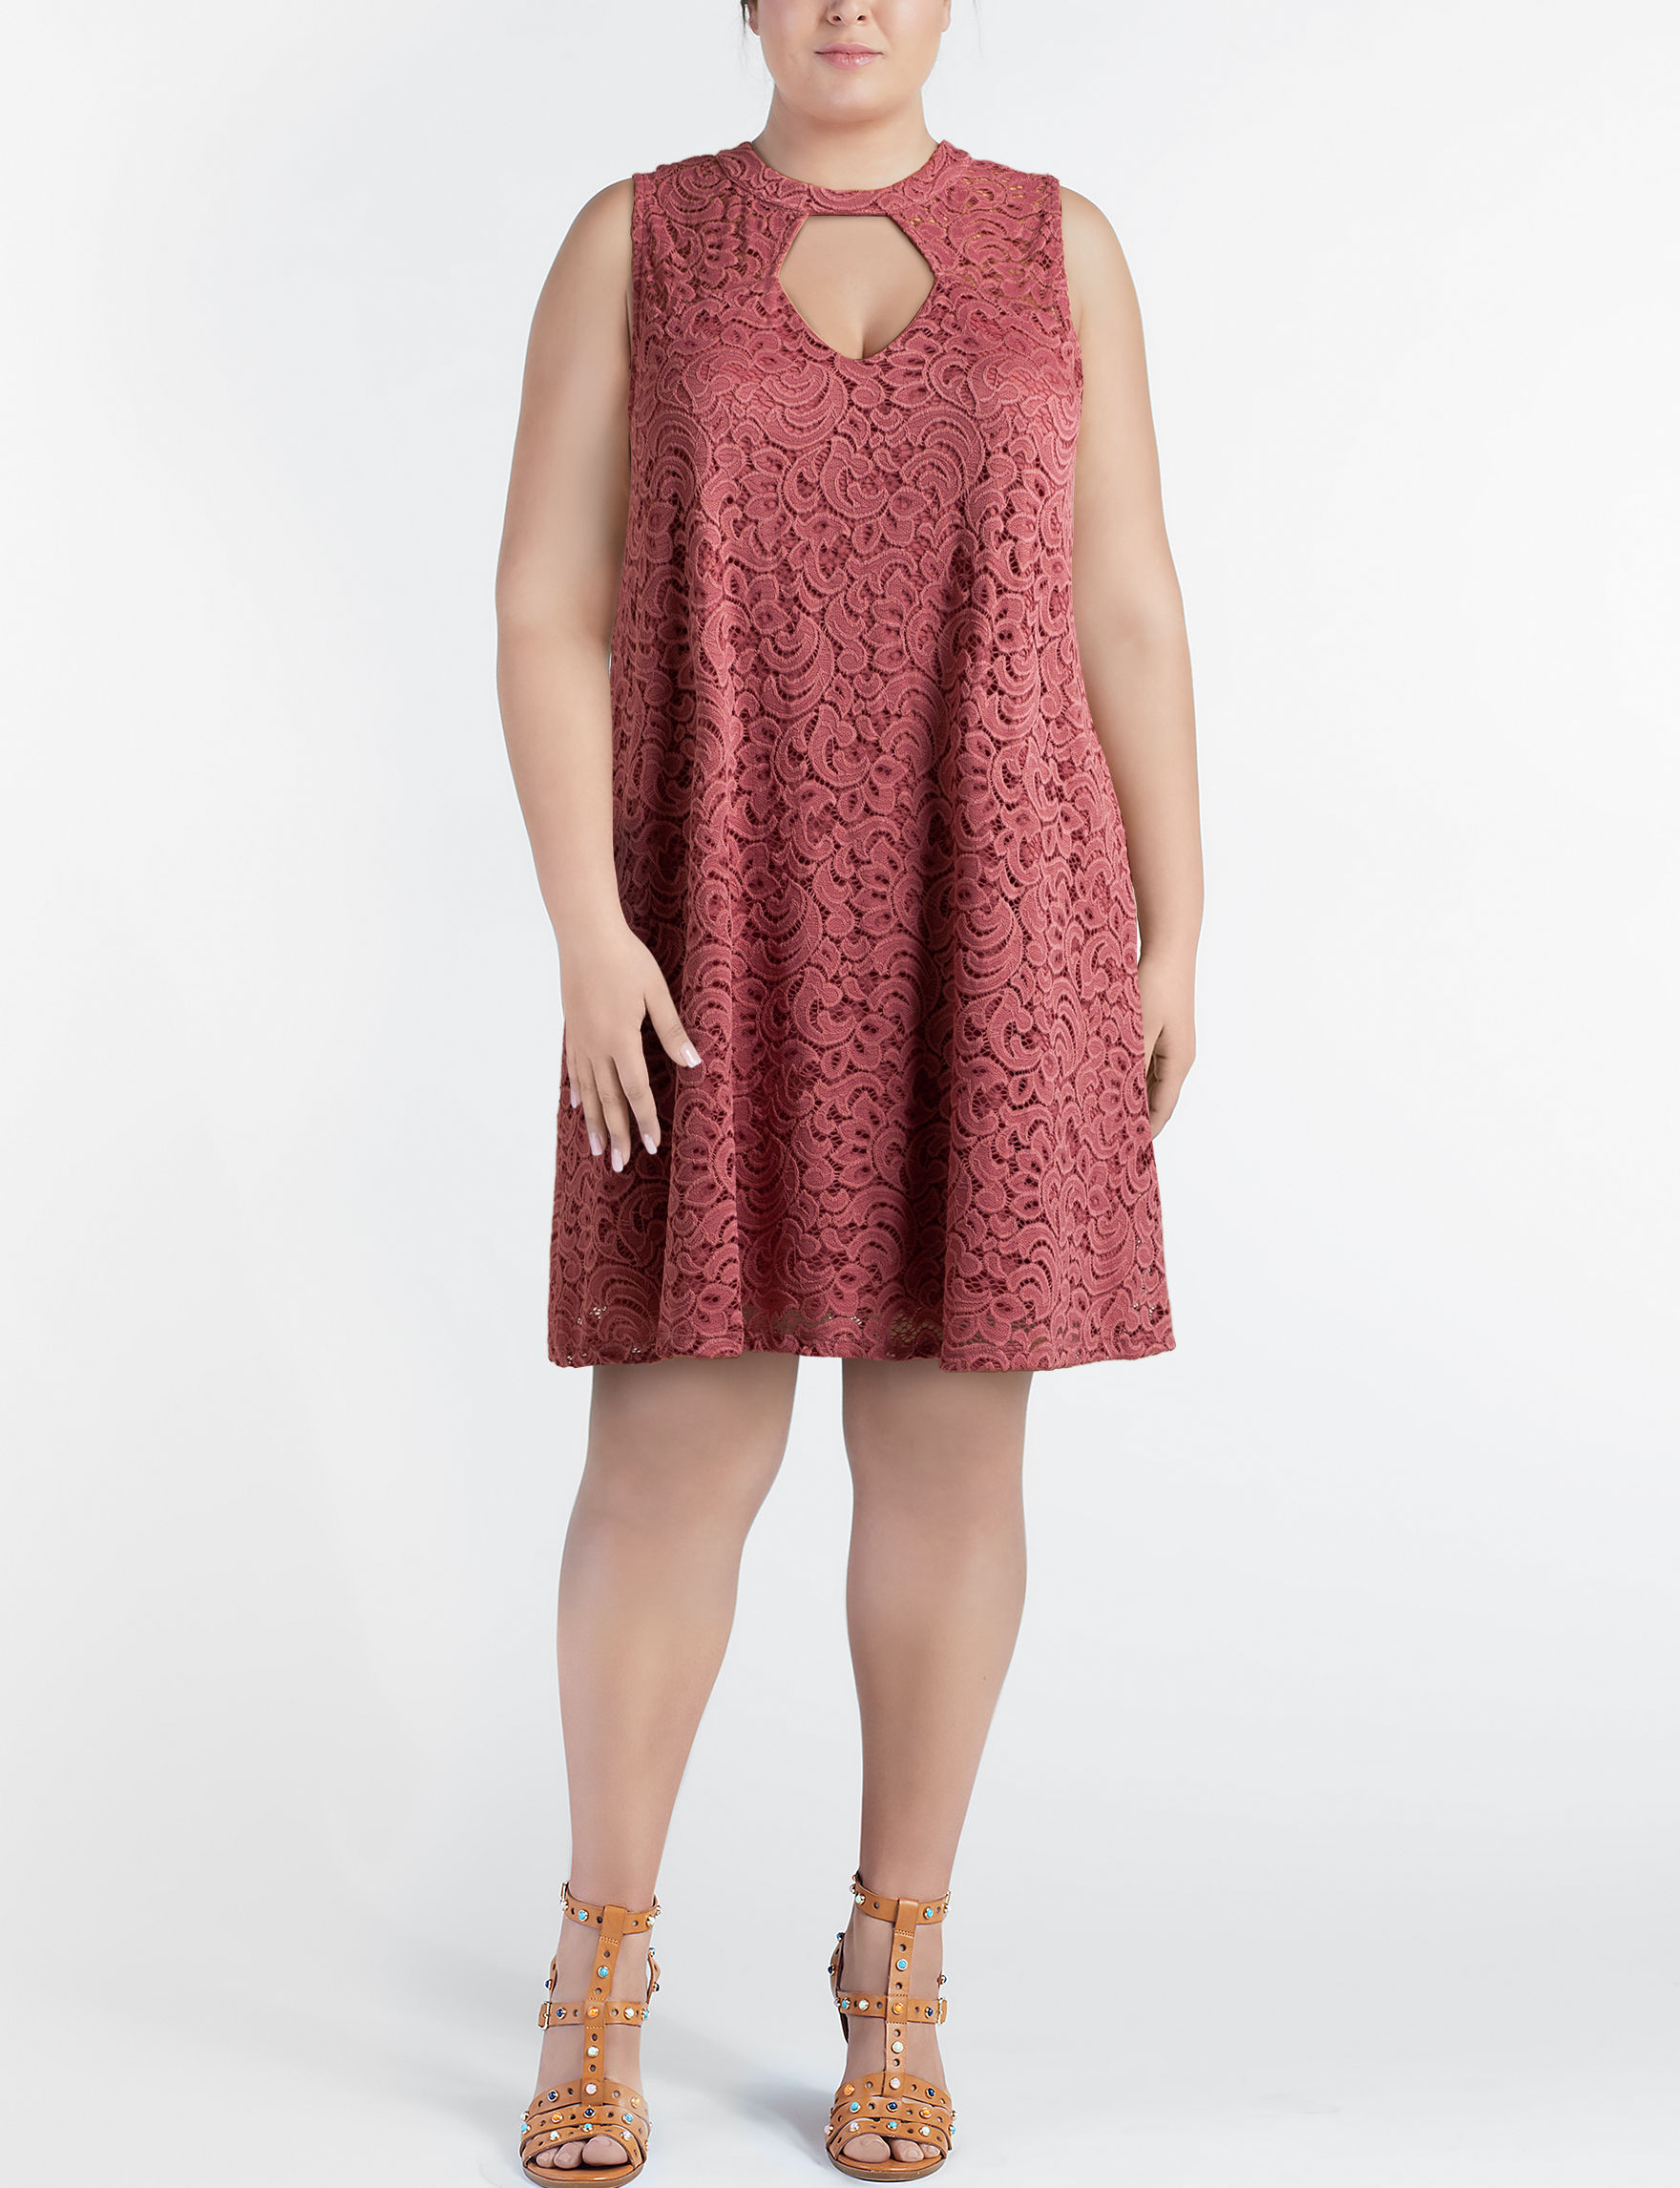 Wishful Park Pink Cocktail & Party Everyday & Casual Shift Dresses